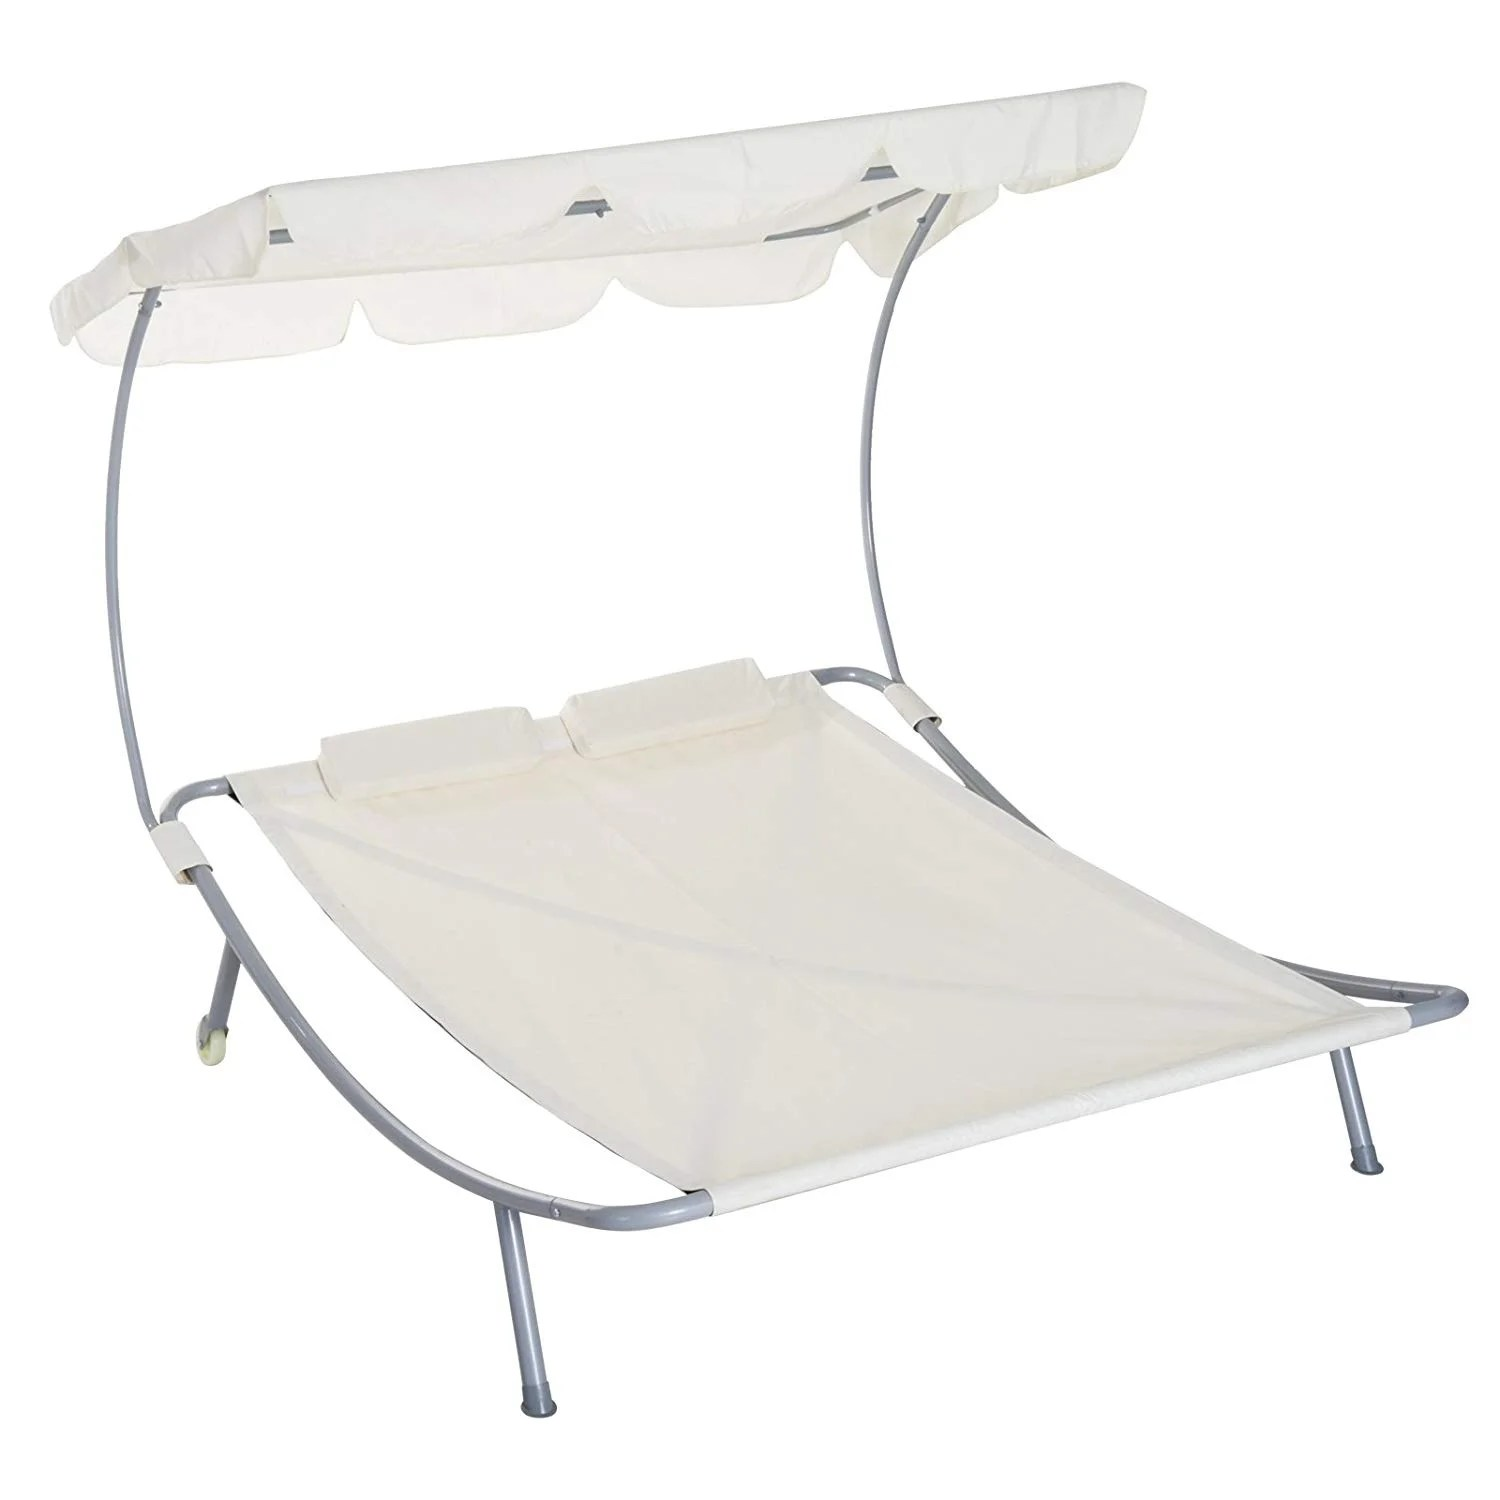 White Sun Lounge Outsunny 2 Person Sturdy Moveable Sun Protection Chaise Lounge Hammock Sunbed With Canopy And Stand Cream White